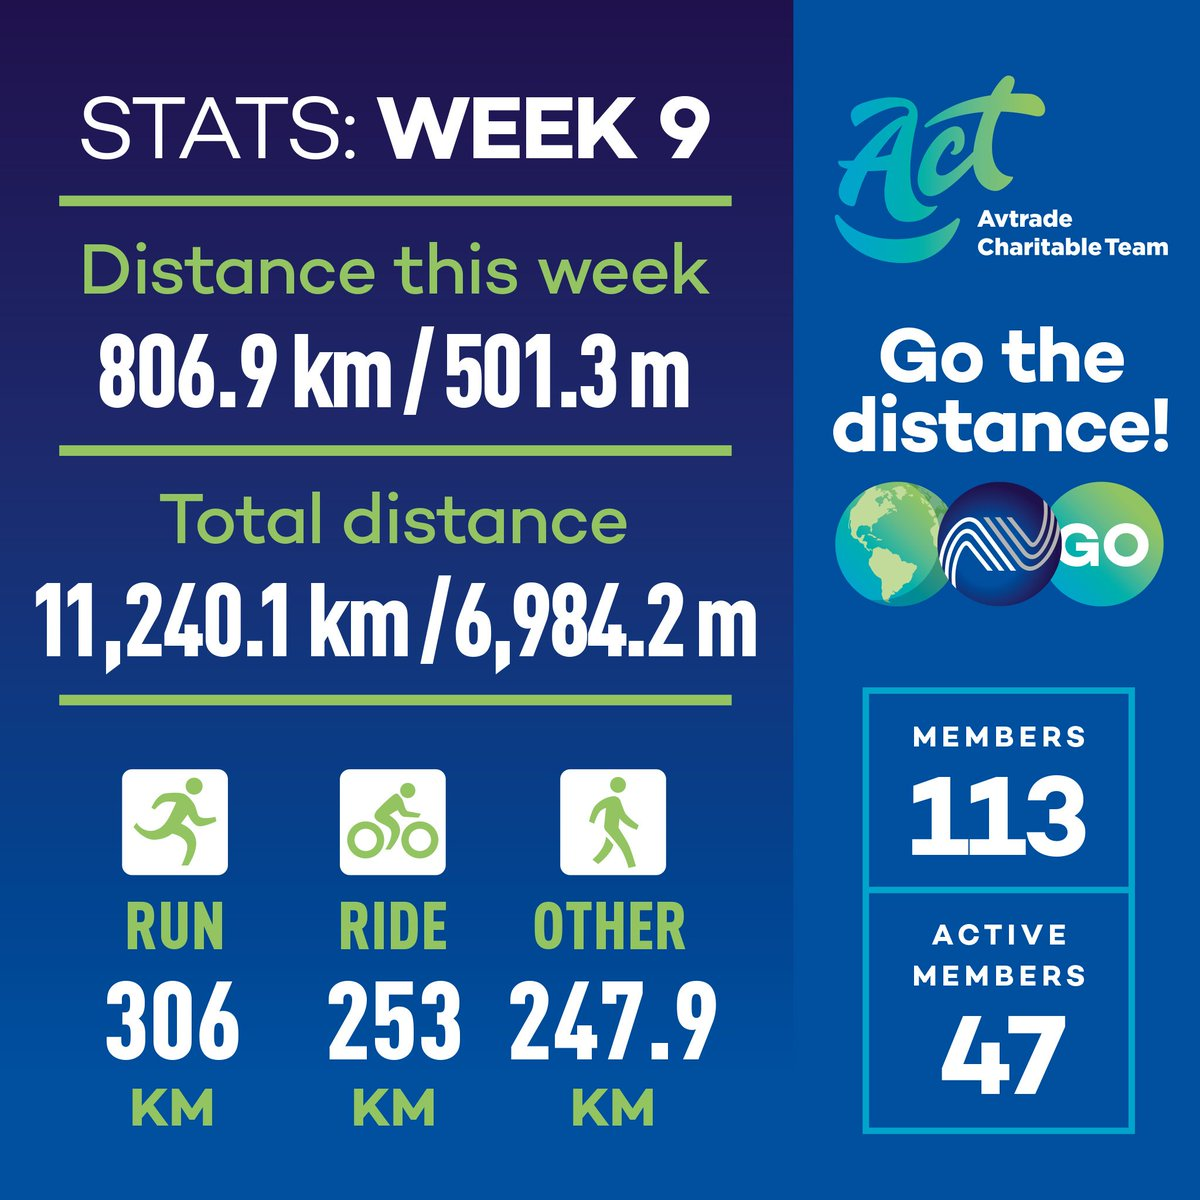 Week 9 of our Challenge, and a big well done to the 15 members who have been active on all 9 weeks so far! Also a shout out to Kelly Wilson for completing the RISE 8k run yesterday!! #act #mentalhealth #fundraising #charity #thankyou